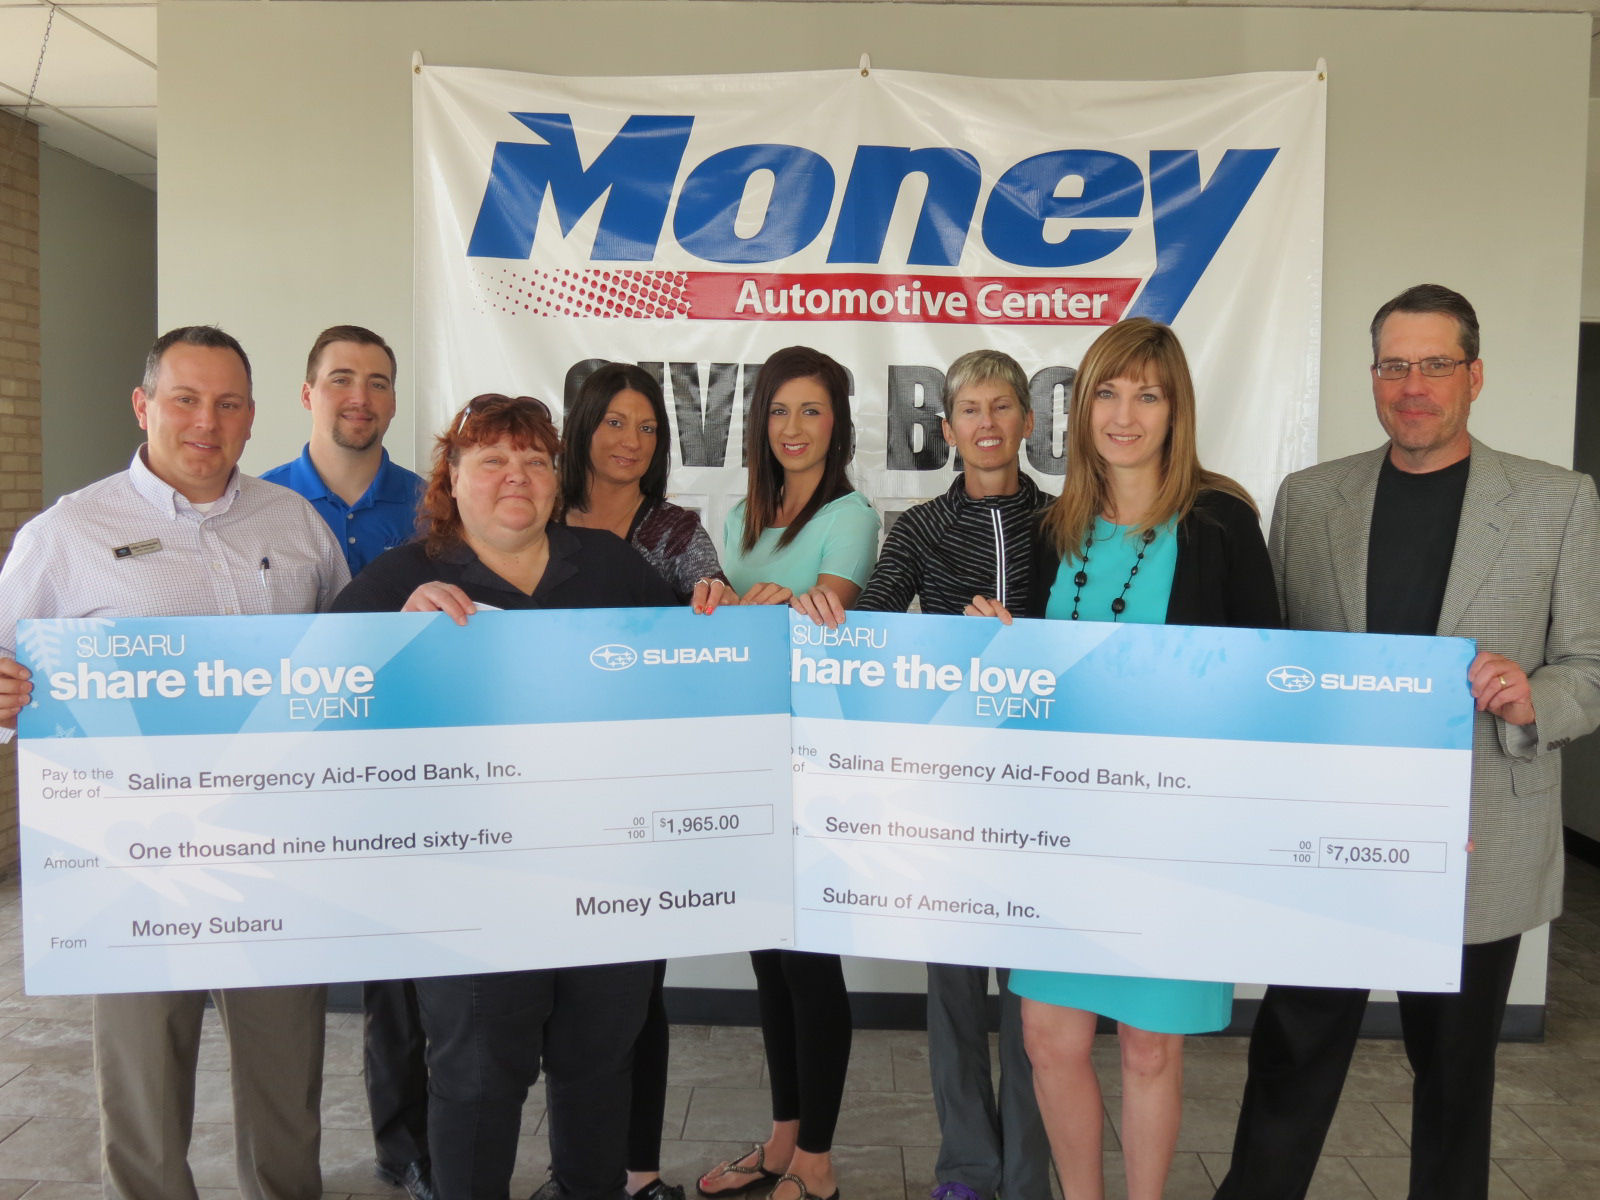 Business Makes $9,000 Food Bank Donation